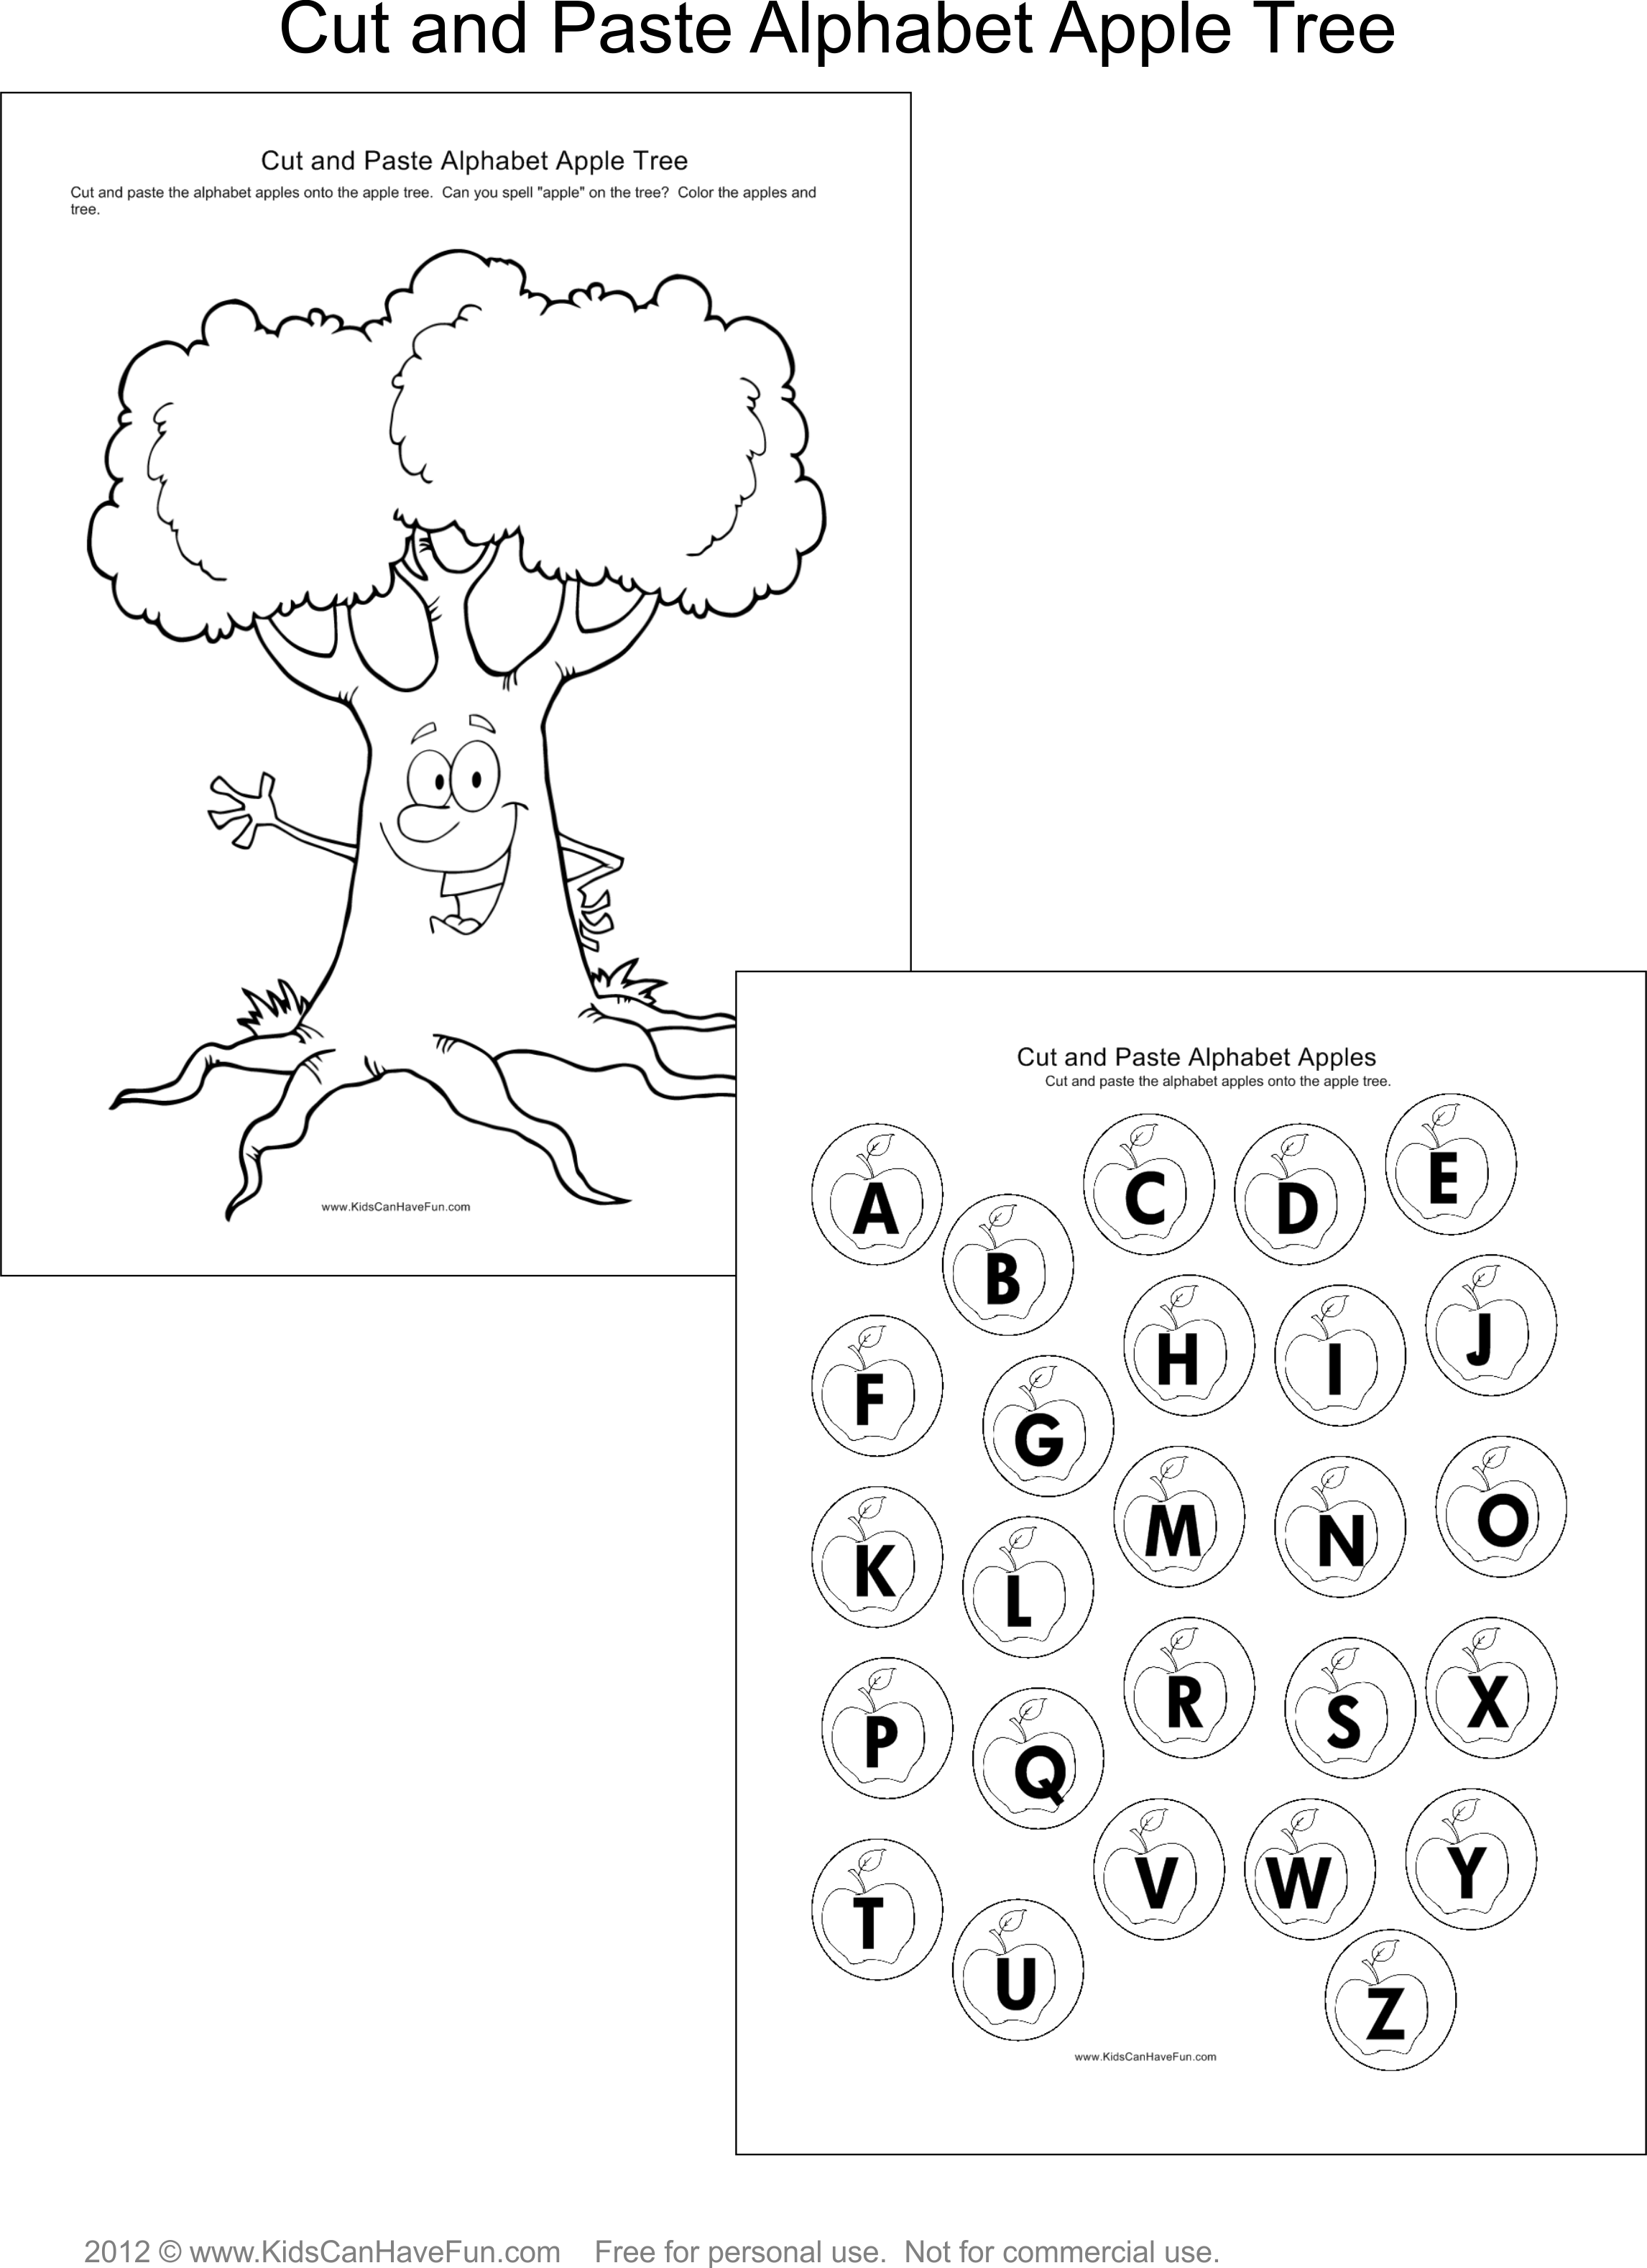 Cut And Paste Alphabet Apple Tree Dscanhavefun Cut Paste Activities